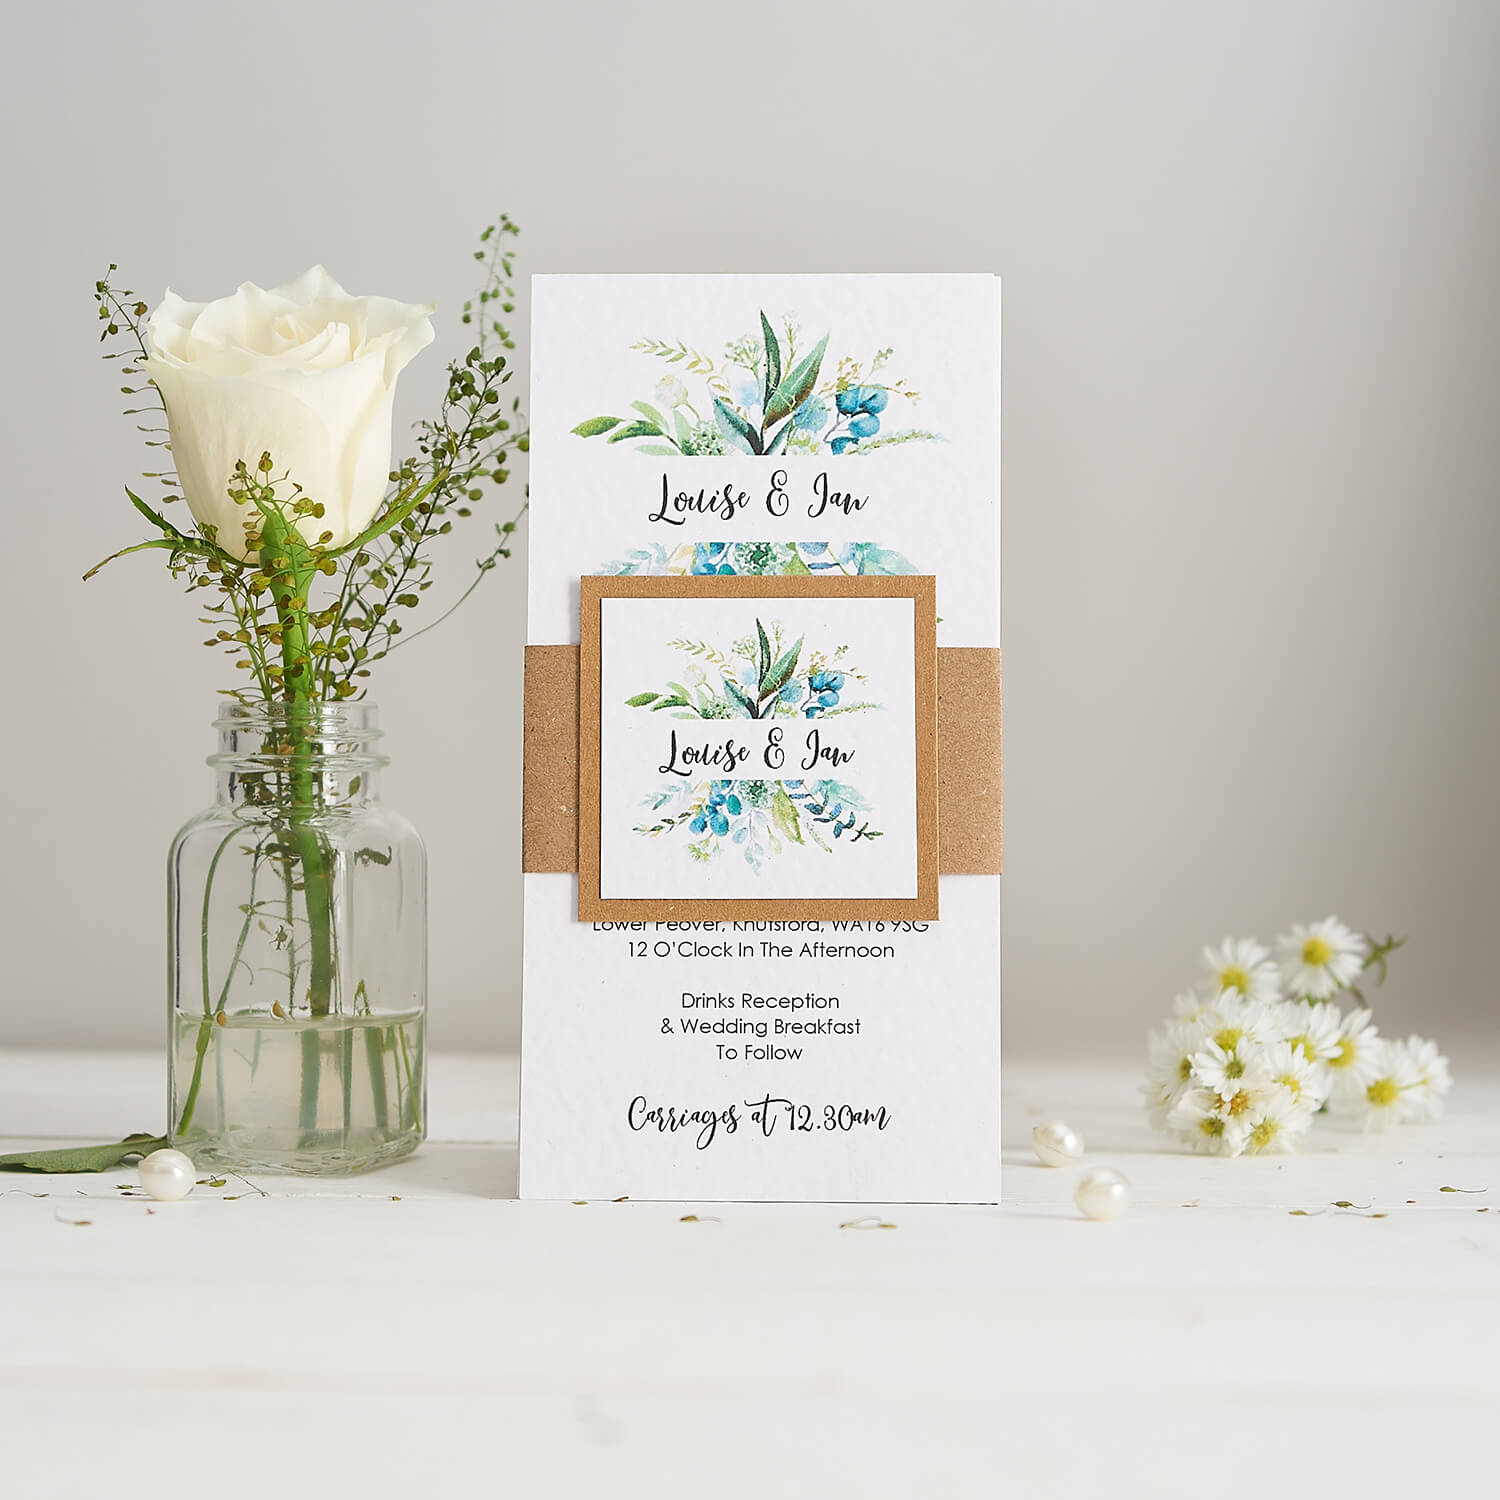 Stationery photography of handmade wedding invites featuring fresh flowers